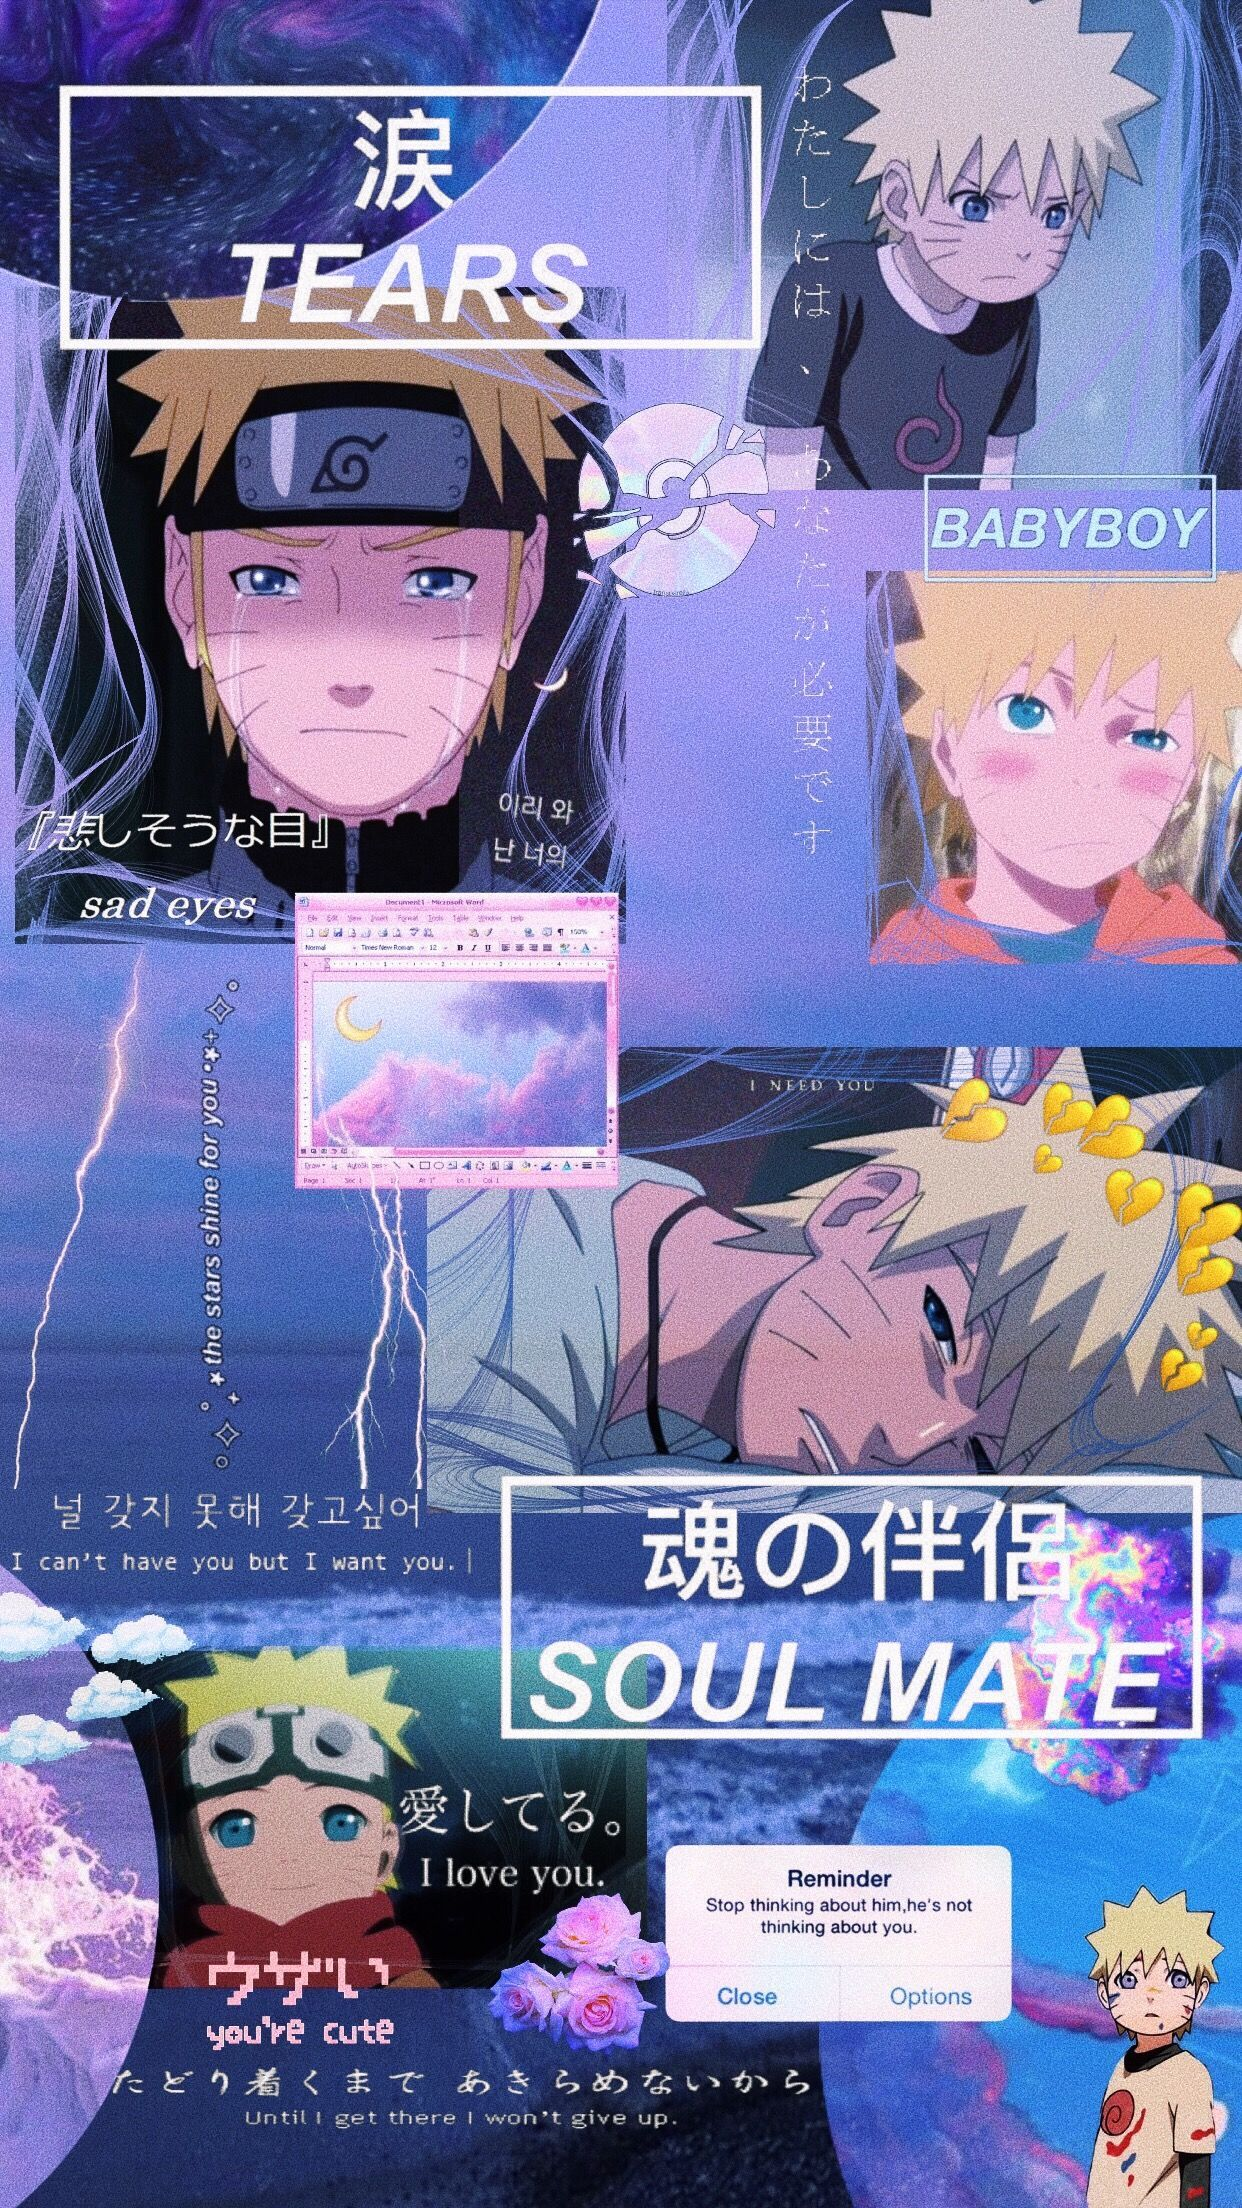 Naruto Anime Narutoshippuden Aesthetic Edit Wallpaper In 2020 Anime Wallpaper Iphone Naruto Cute Wallpaper Naruto Shippuden